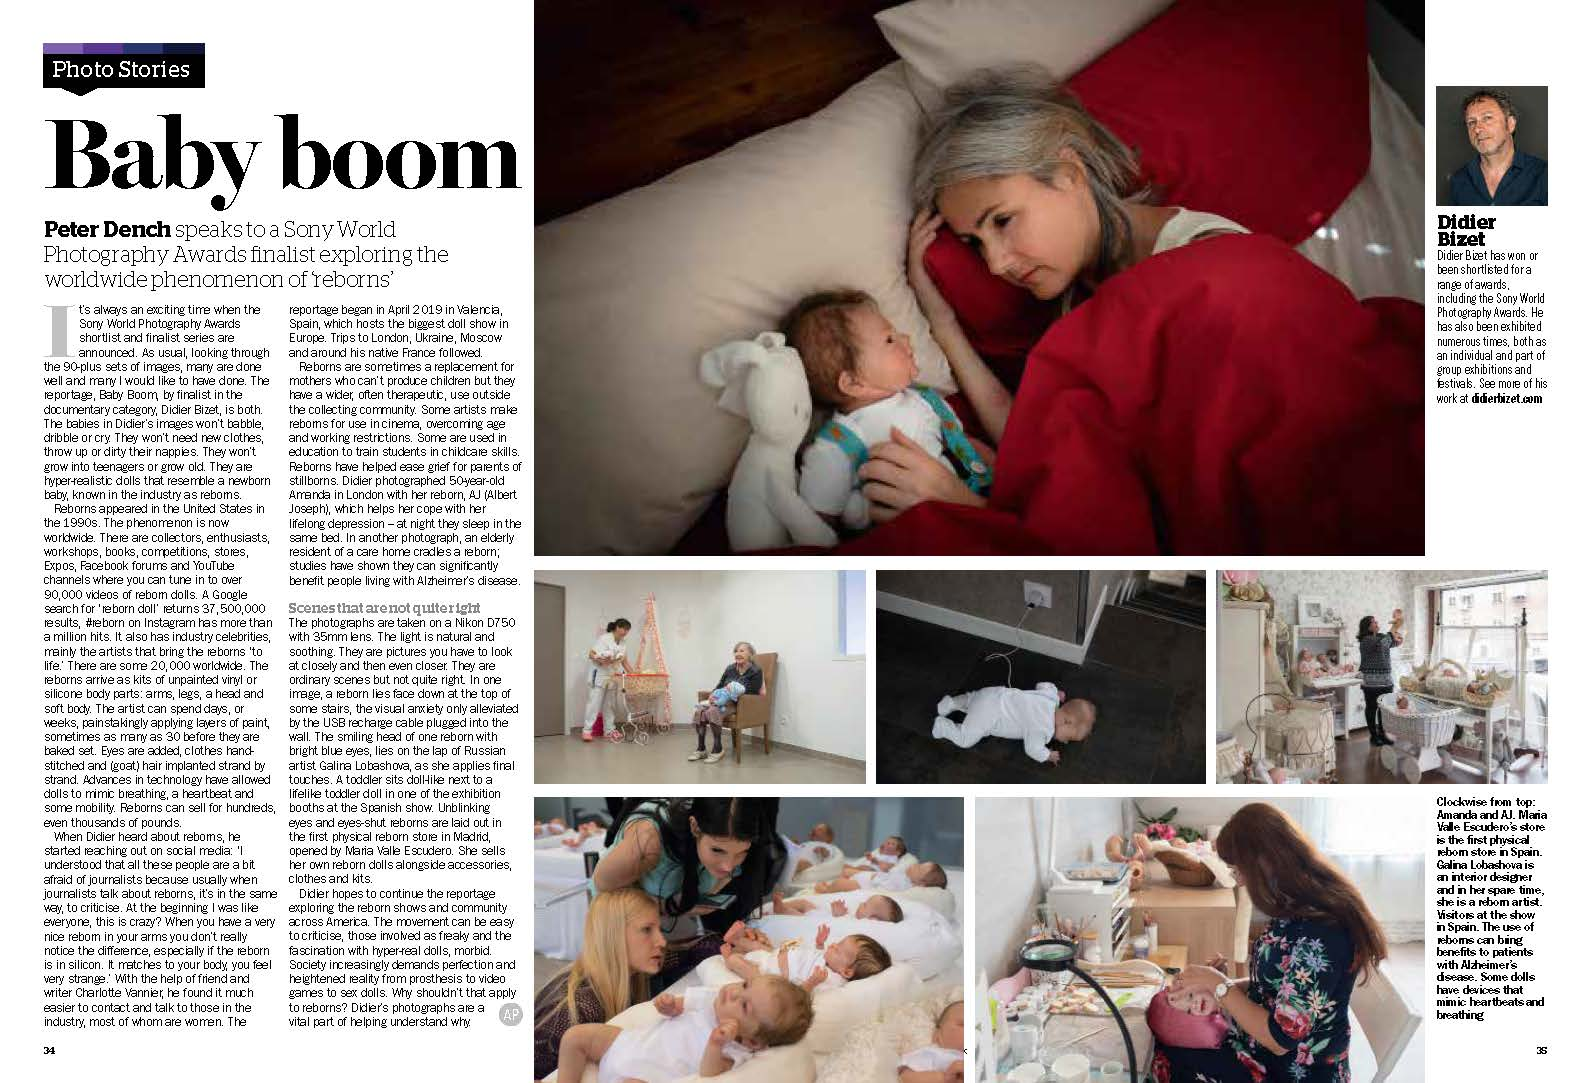 AP_Oct172020_PhotoStories_BabyBoom_BizetDench